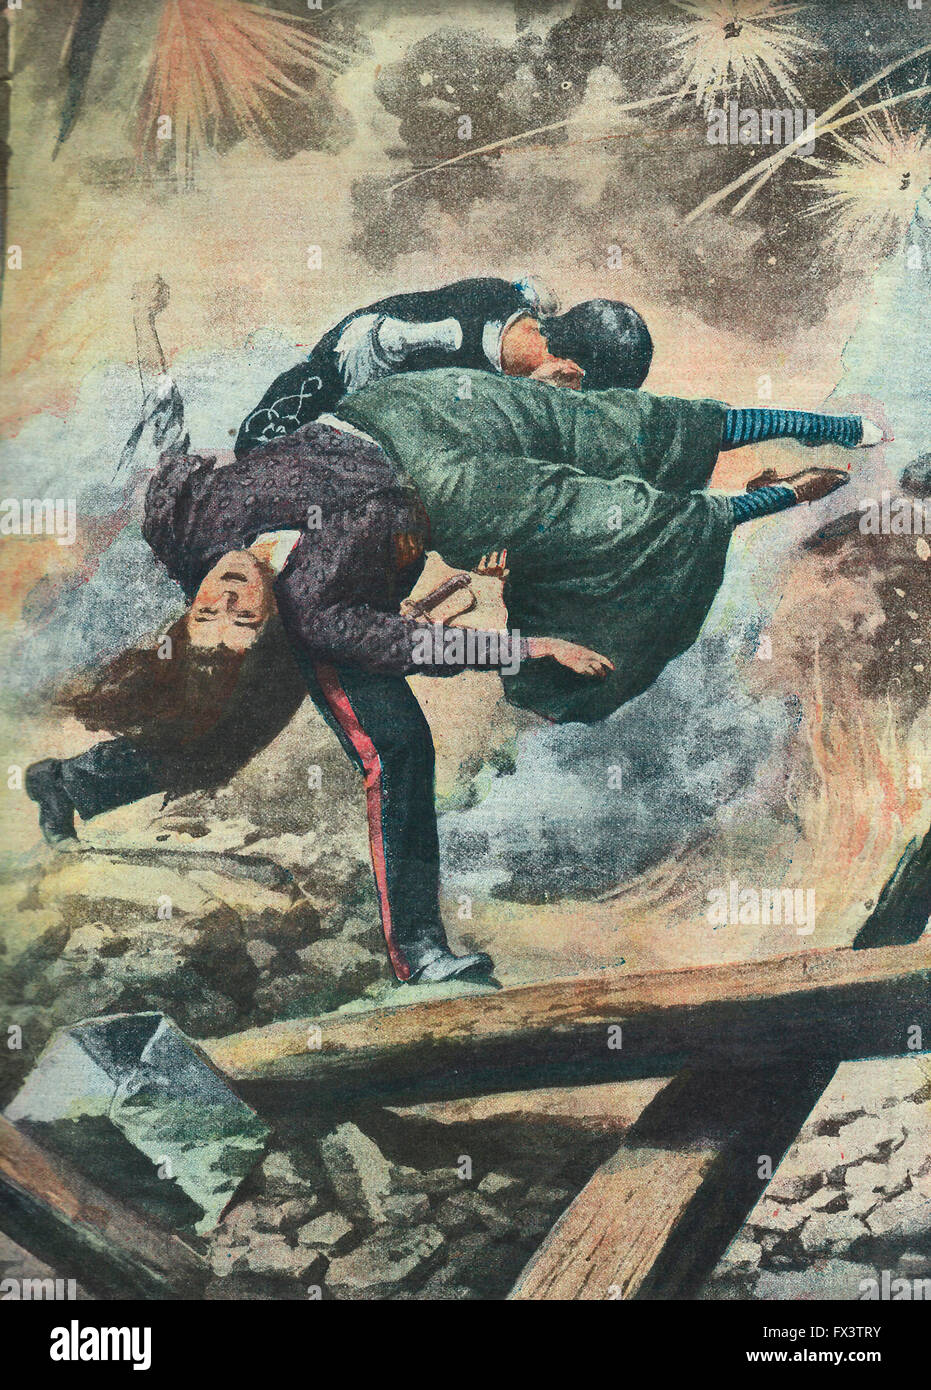 A major disaster in a fireworks factory in Rome - The heroism of a police sergeant  1913 - Stock Image